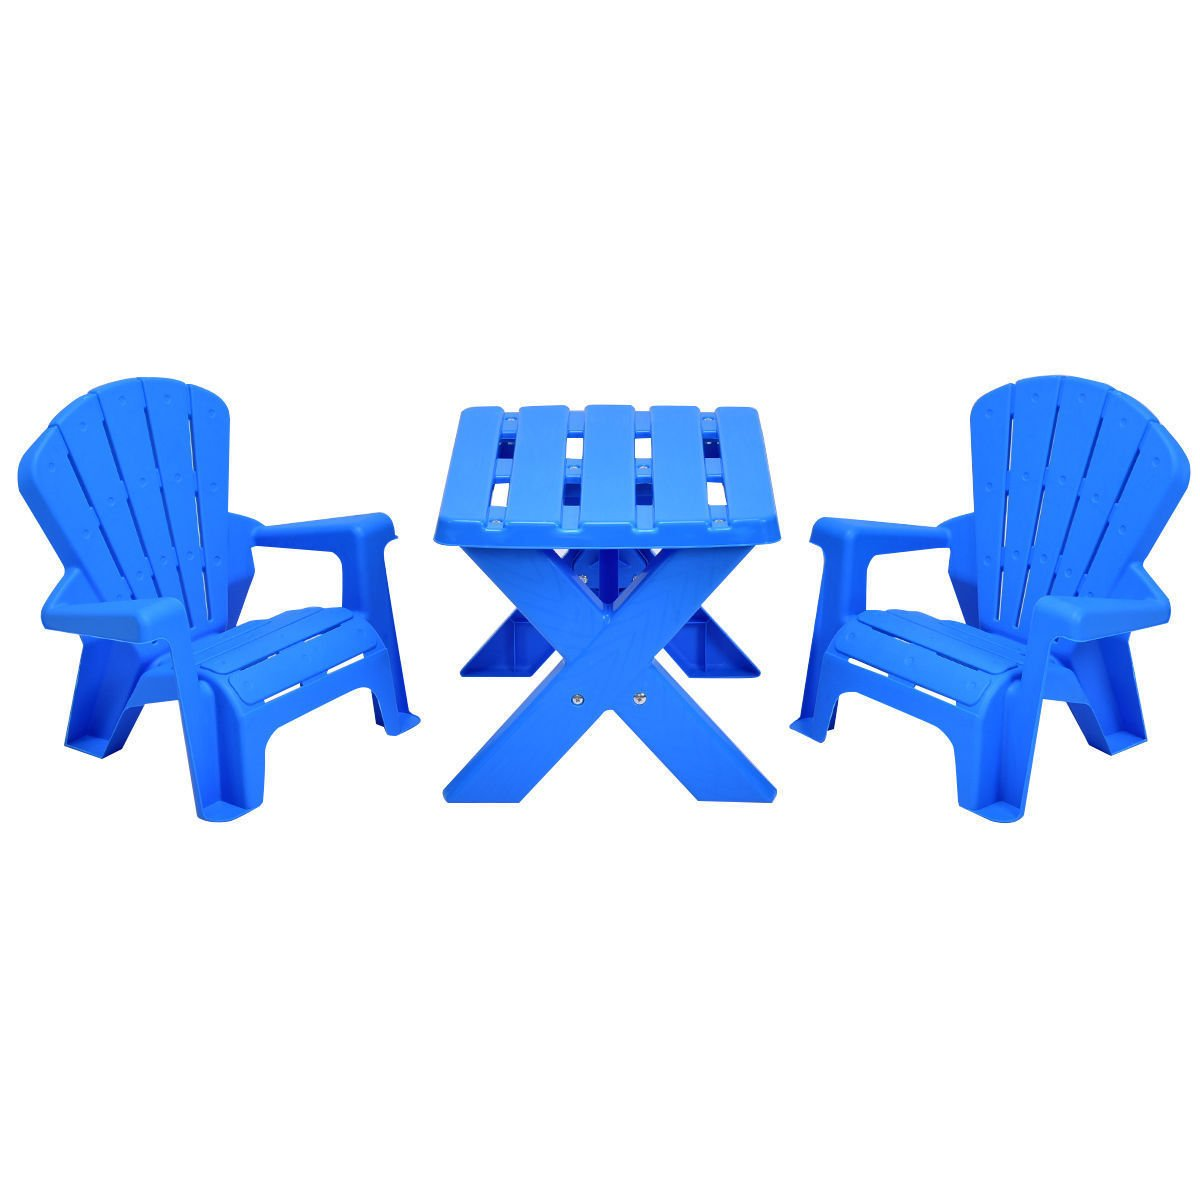 Eight24hours 3 Piece Children Kids Table & Chair Set Play Furniture In/Outdoor Plastic - Blue + FREE E-Book